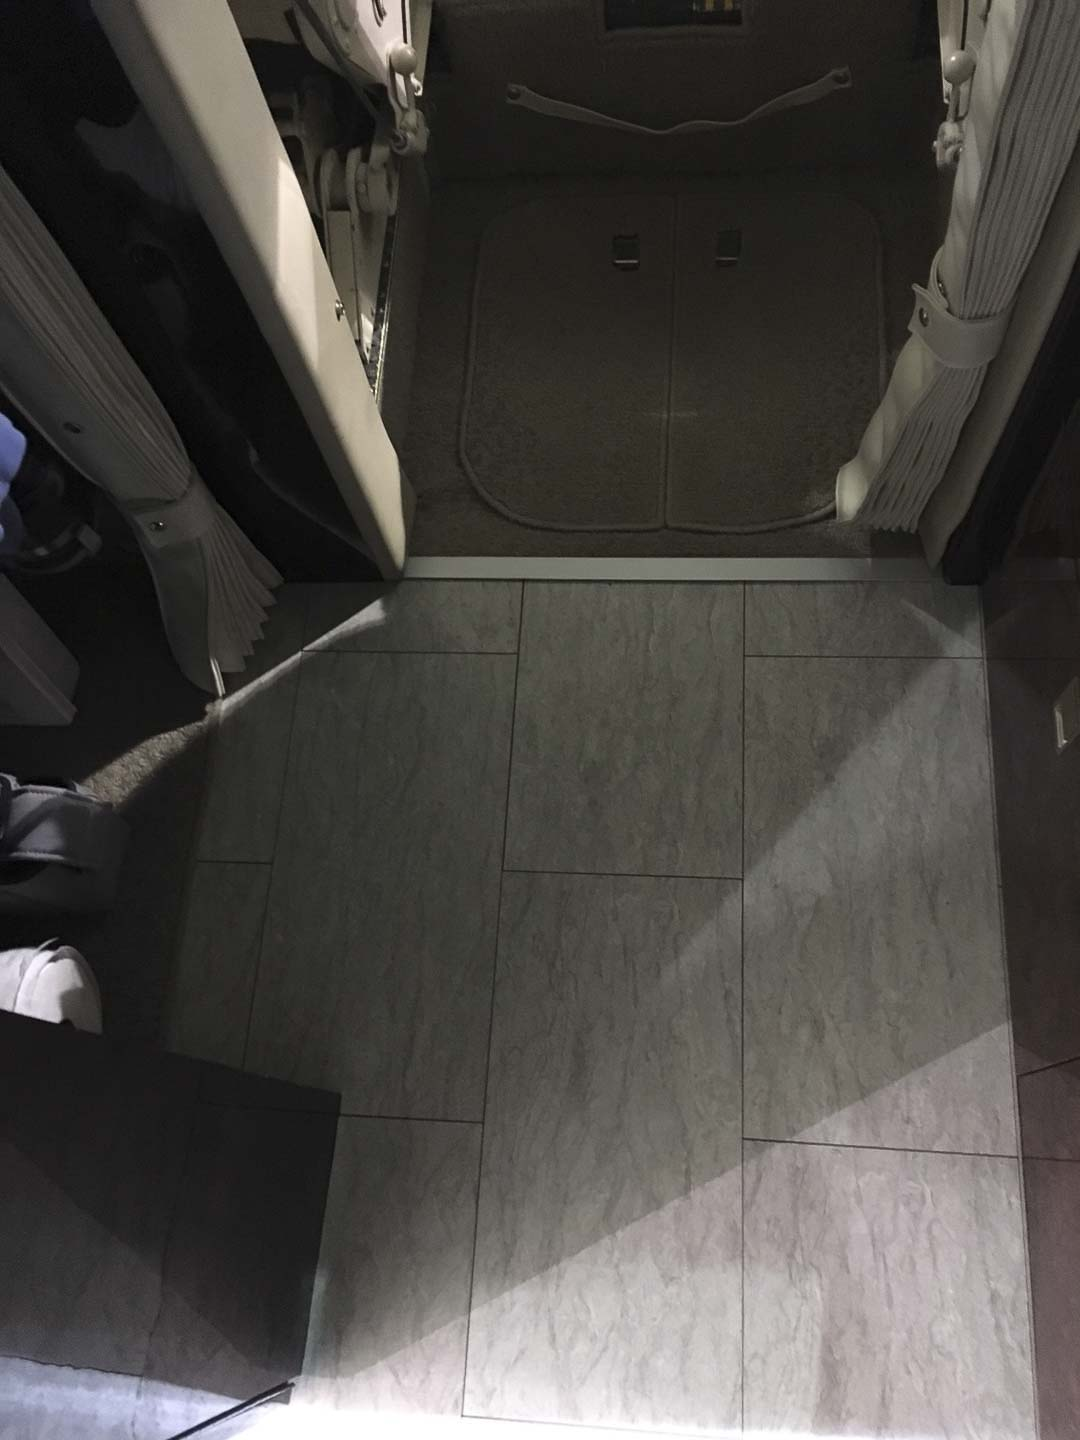 Challenger 601 aeroloc floor entry